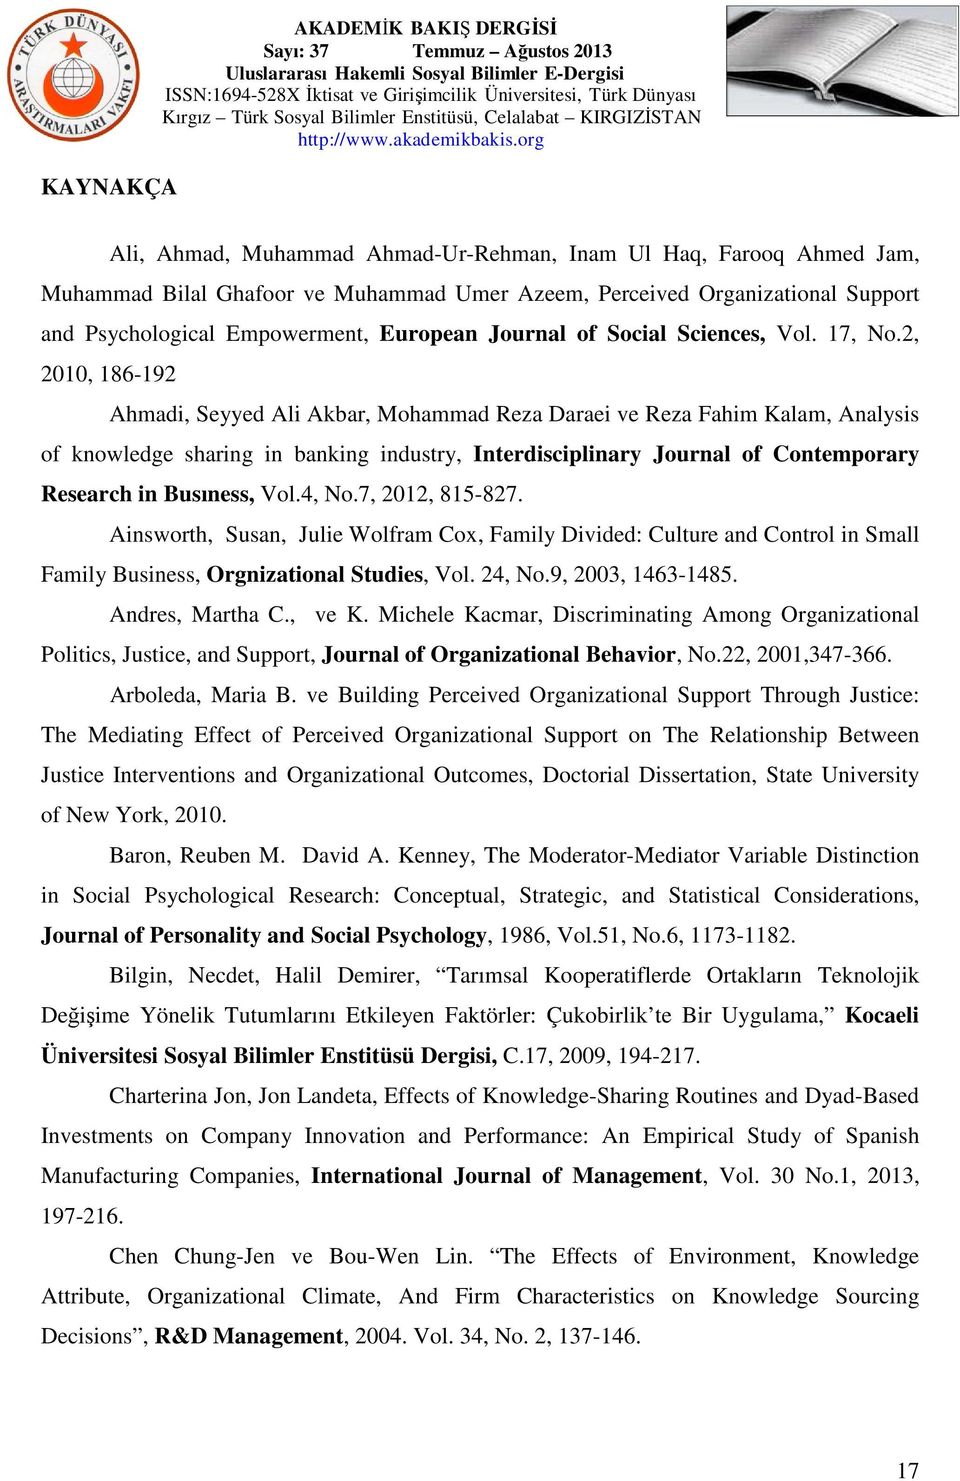 2, 2010, 186-192 Ahmadi, Seyyed Ali Akbar, Mohammad Reza Daraei ve Reza Fahim Kalam, Analysis of knowledge sharing in banking industry, Interdisciplinary Journal of Contemporary Research in Busıness,